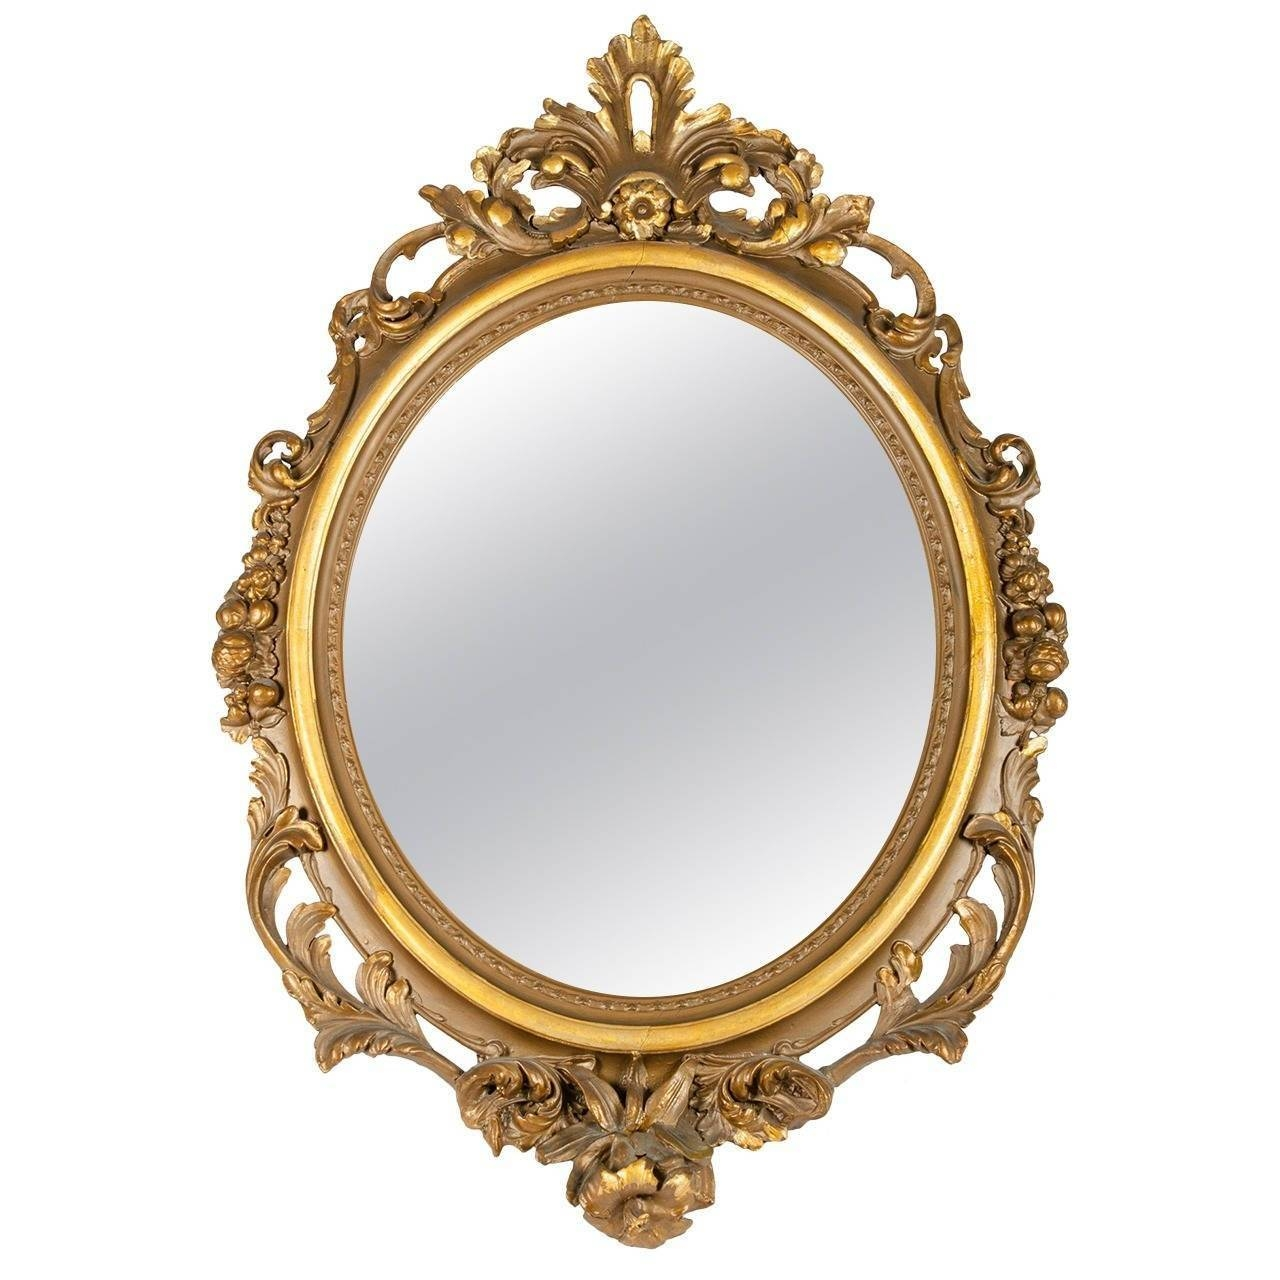 Mirror : Large Round Wall Mirror Awesome Exterior With Simple with Large Round Gold Mirrors (Image 4 of 15)